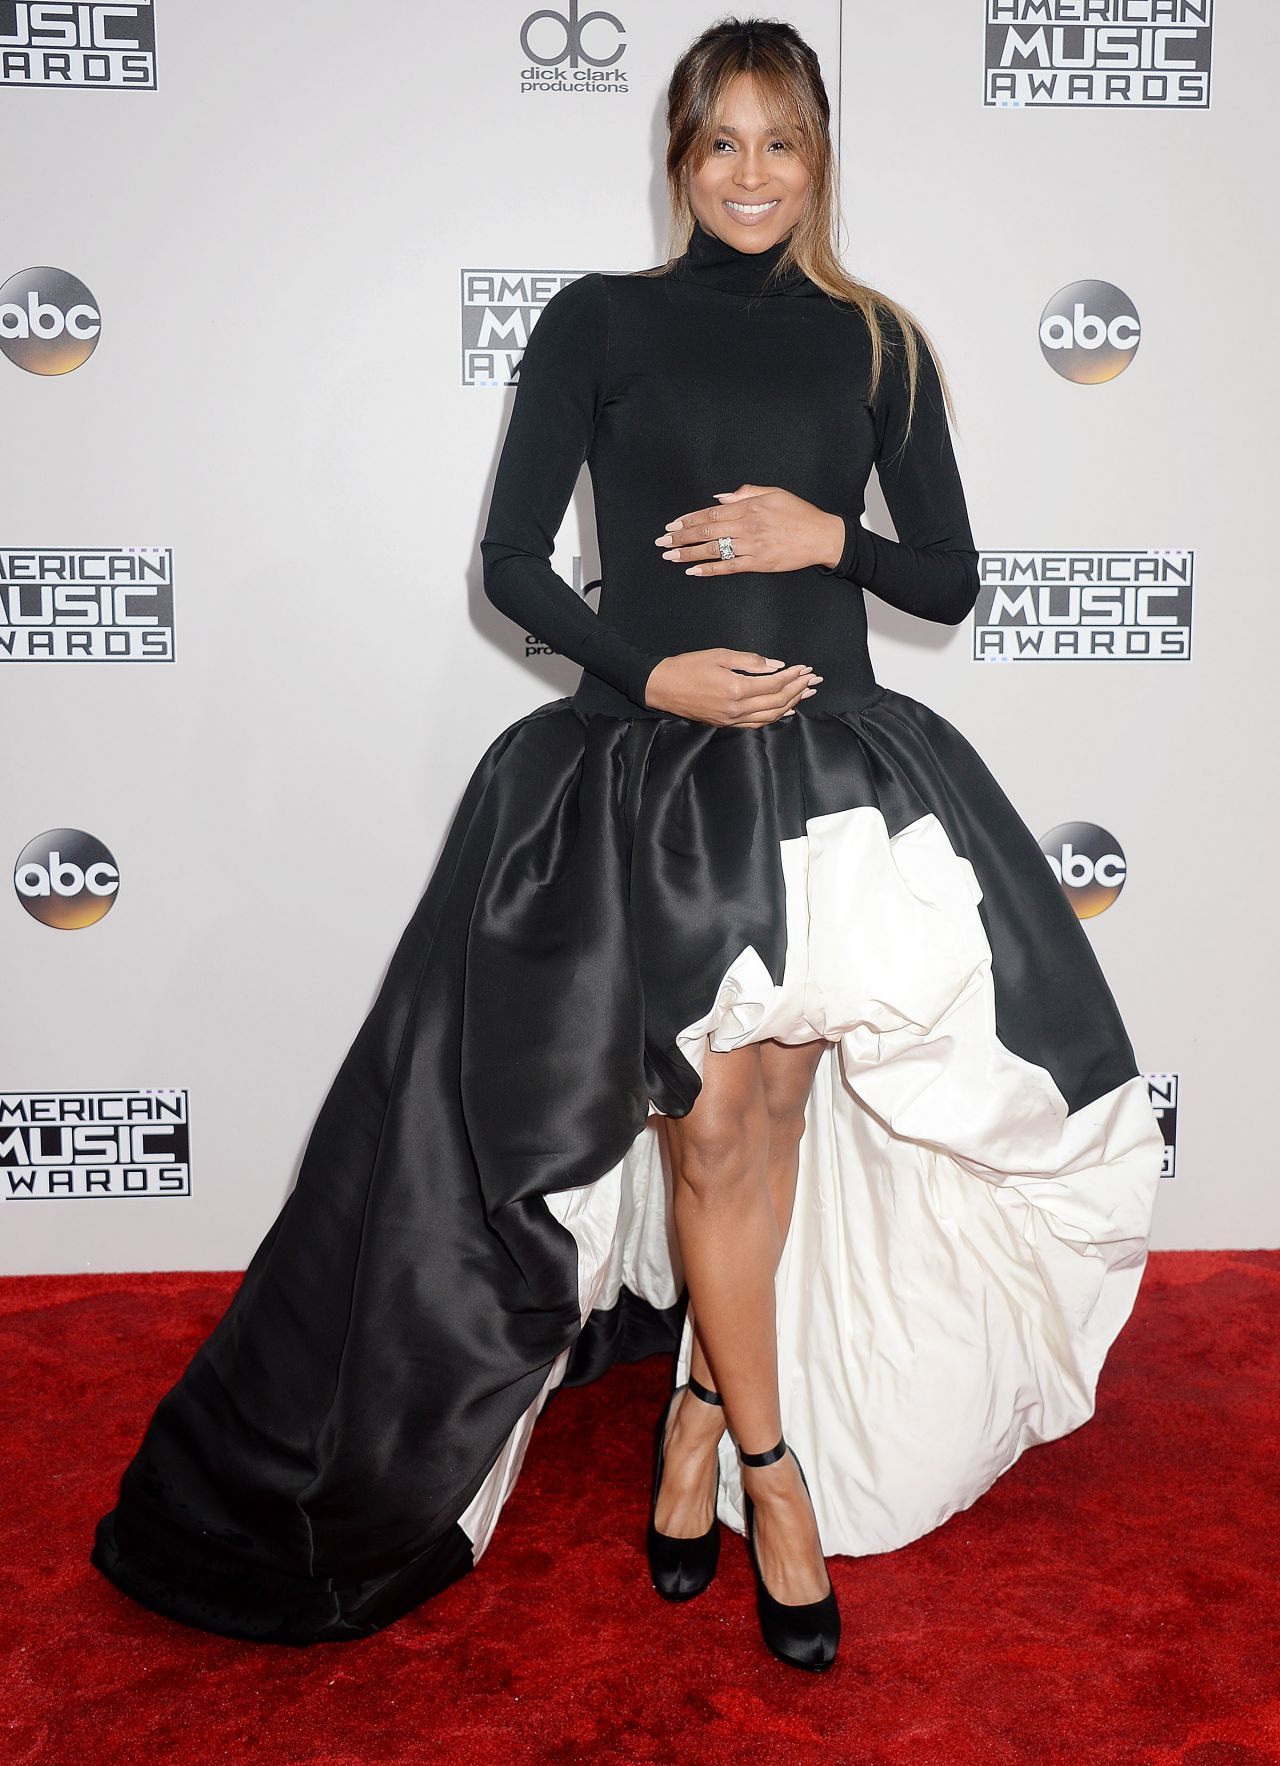 Image result for ciara american music awards 2016